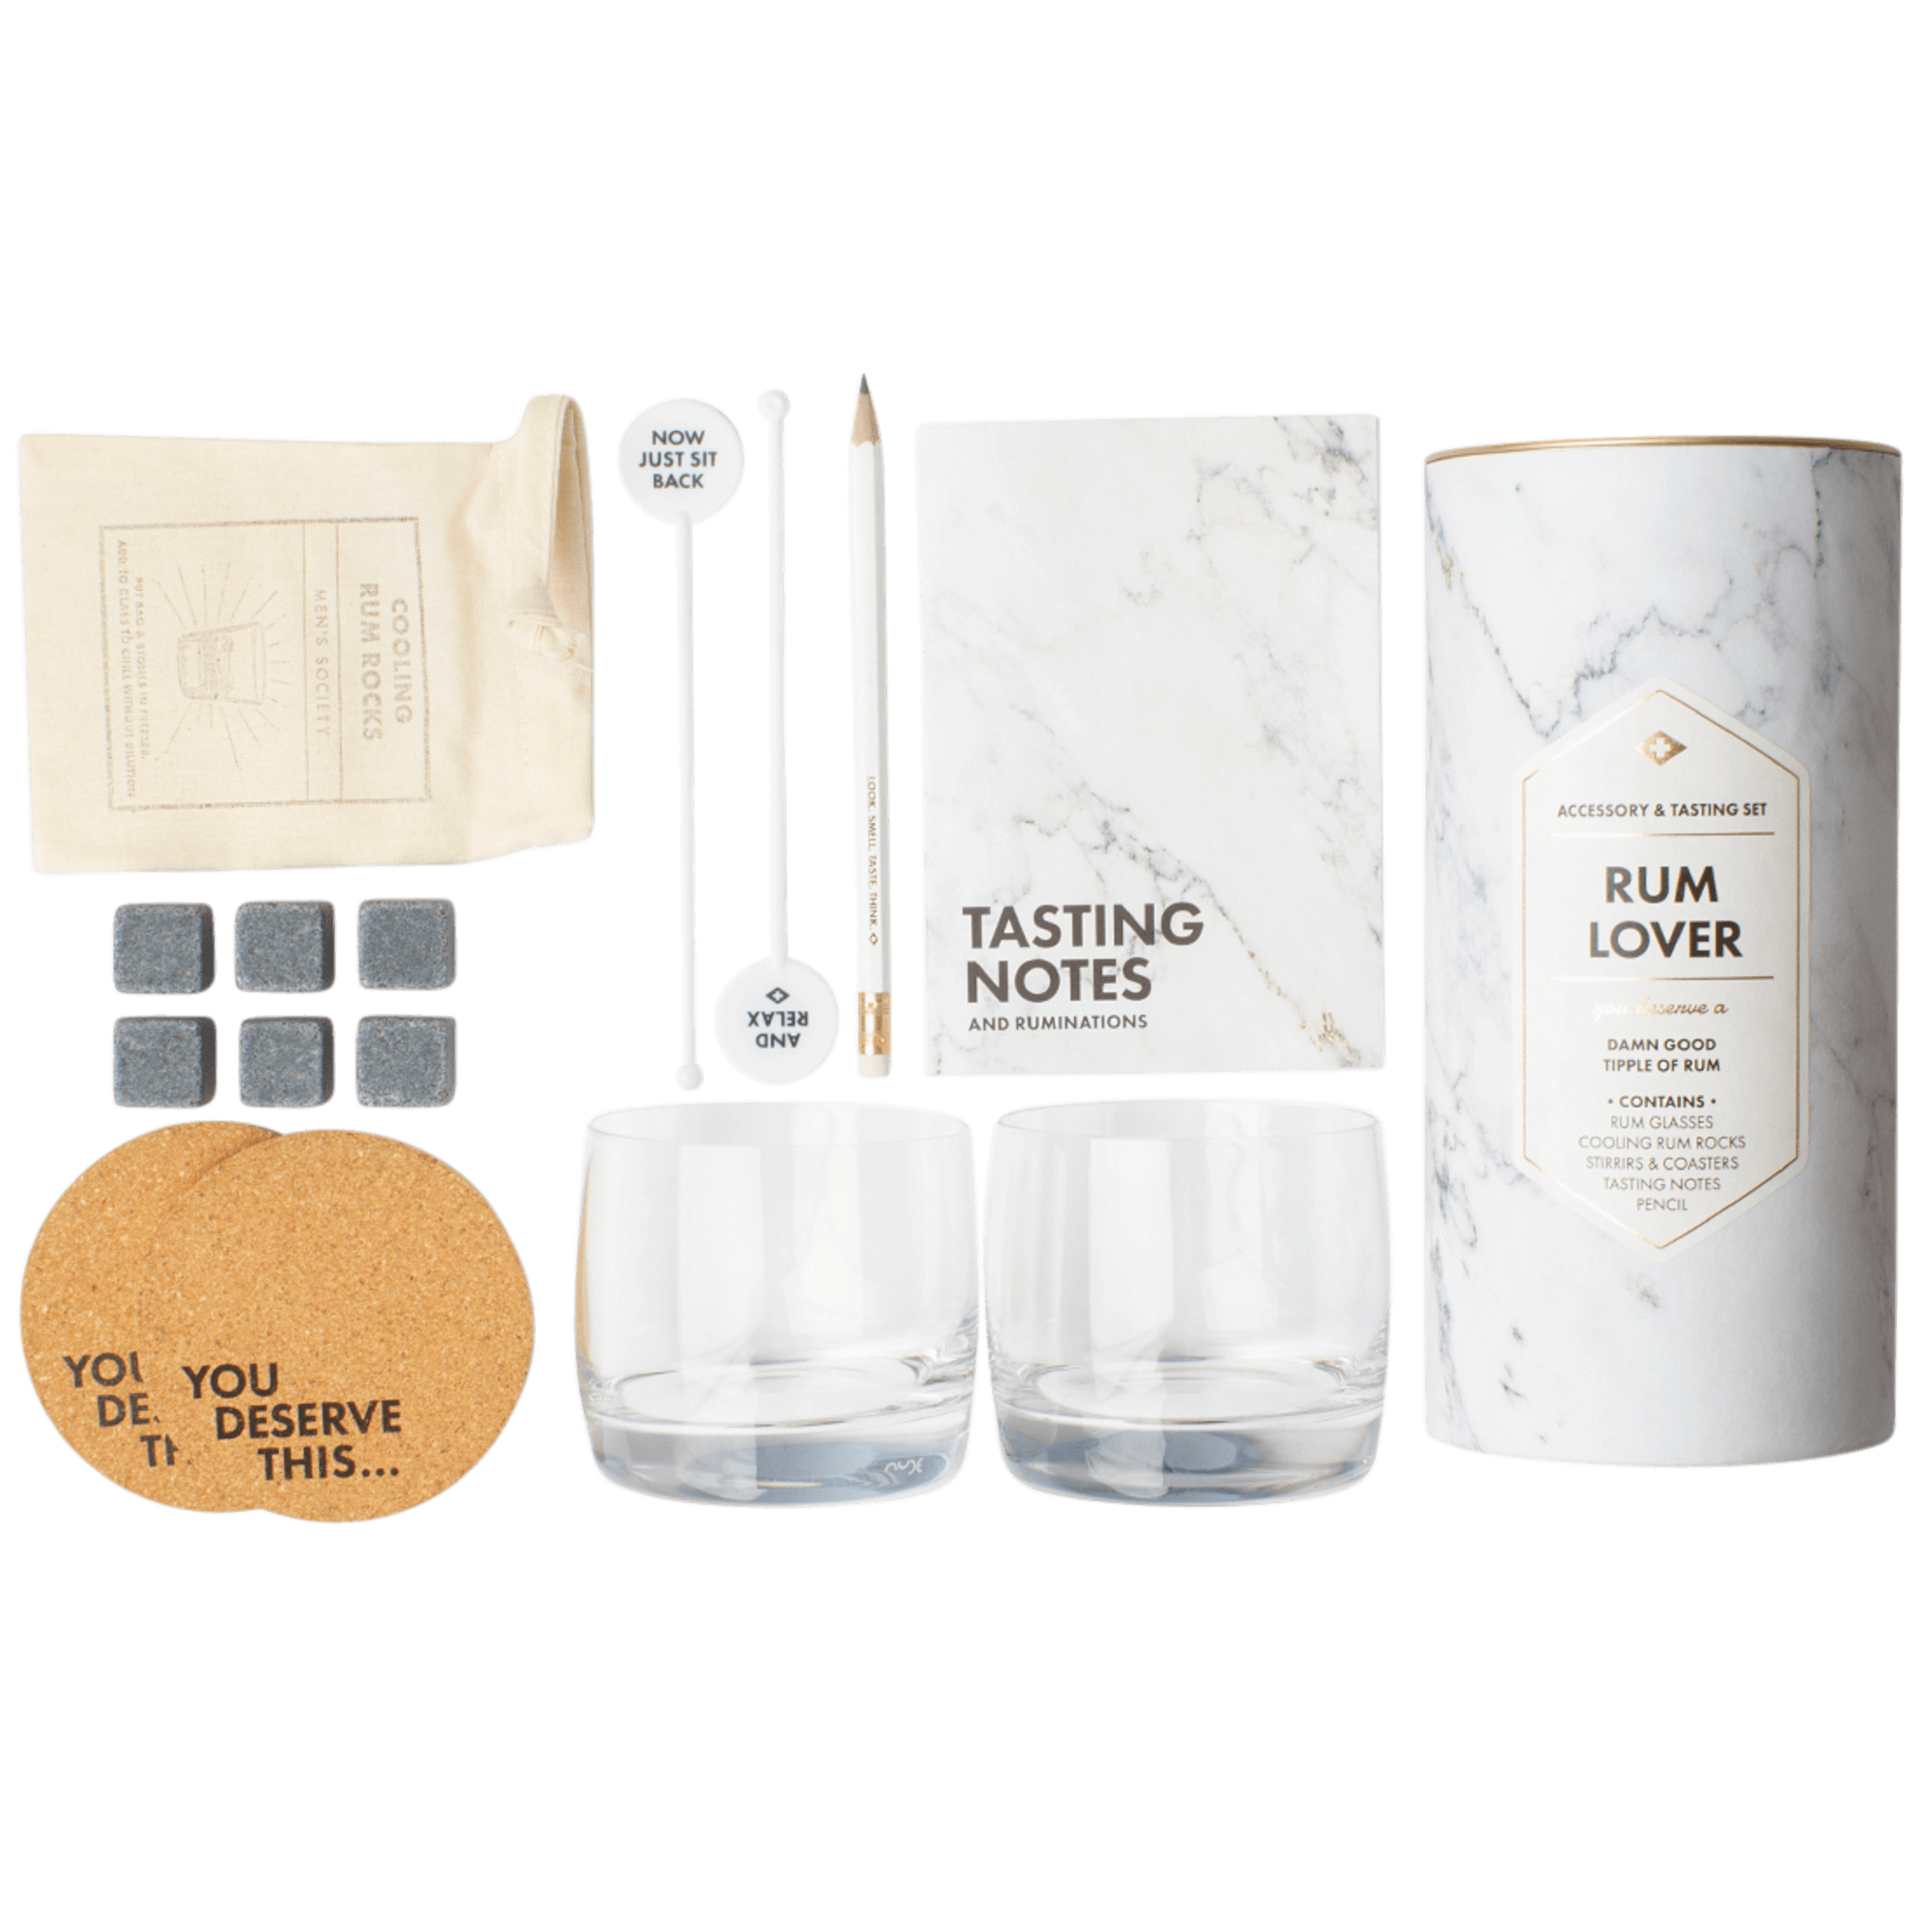 Atlantic Folk Rum Lover\\\'s - Accessory & Tasting Kit $60.00